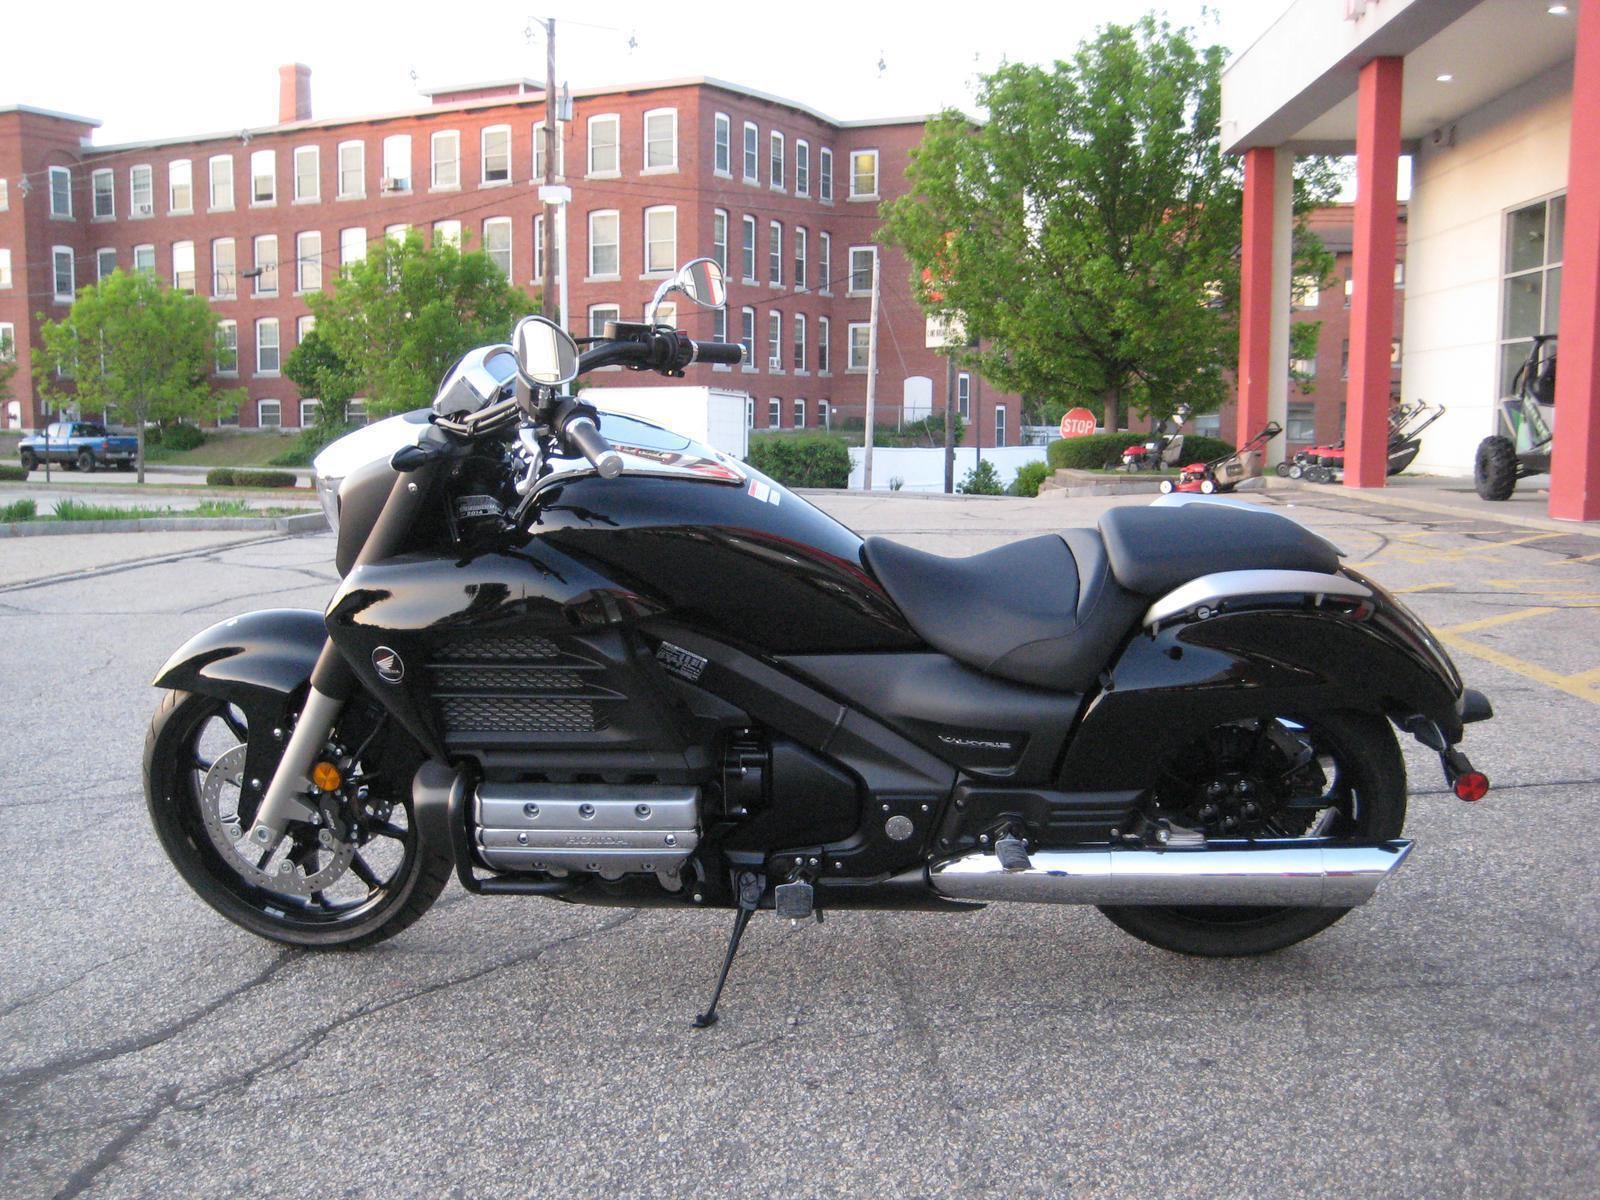 Inventory Nault's Powersports Manchester, NH (800) 366-7220